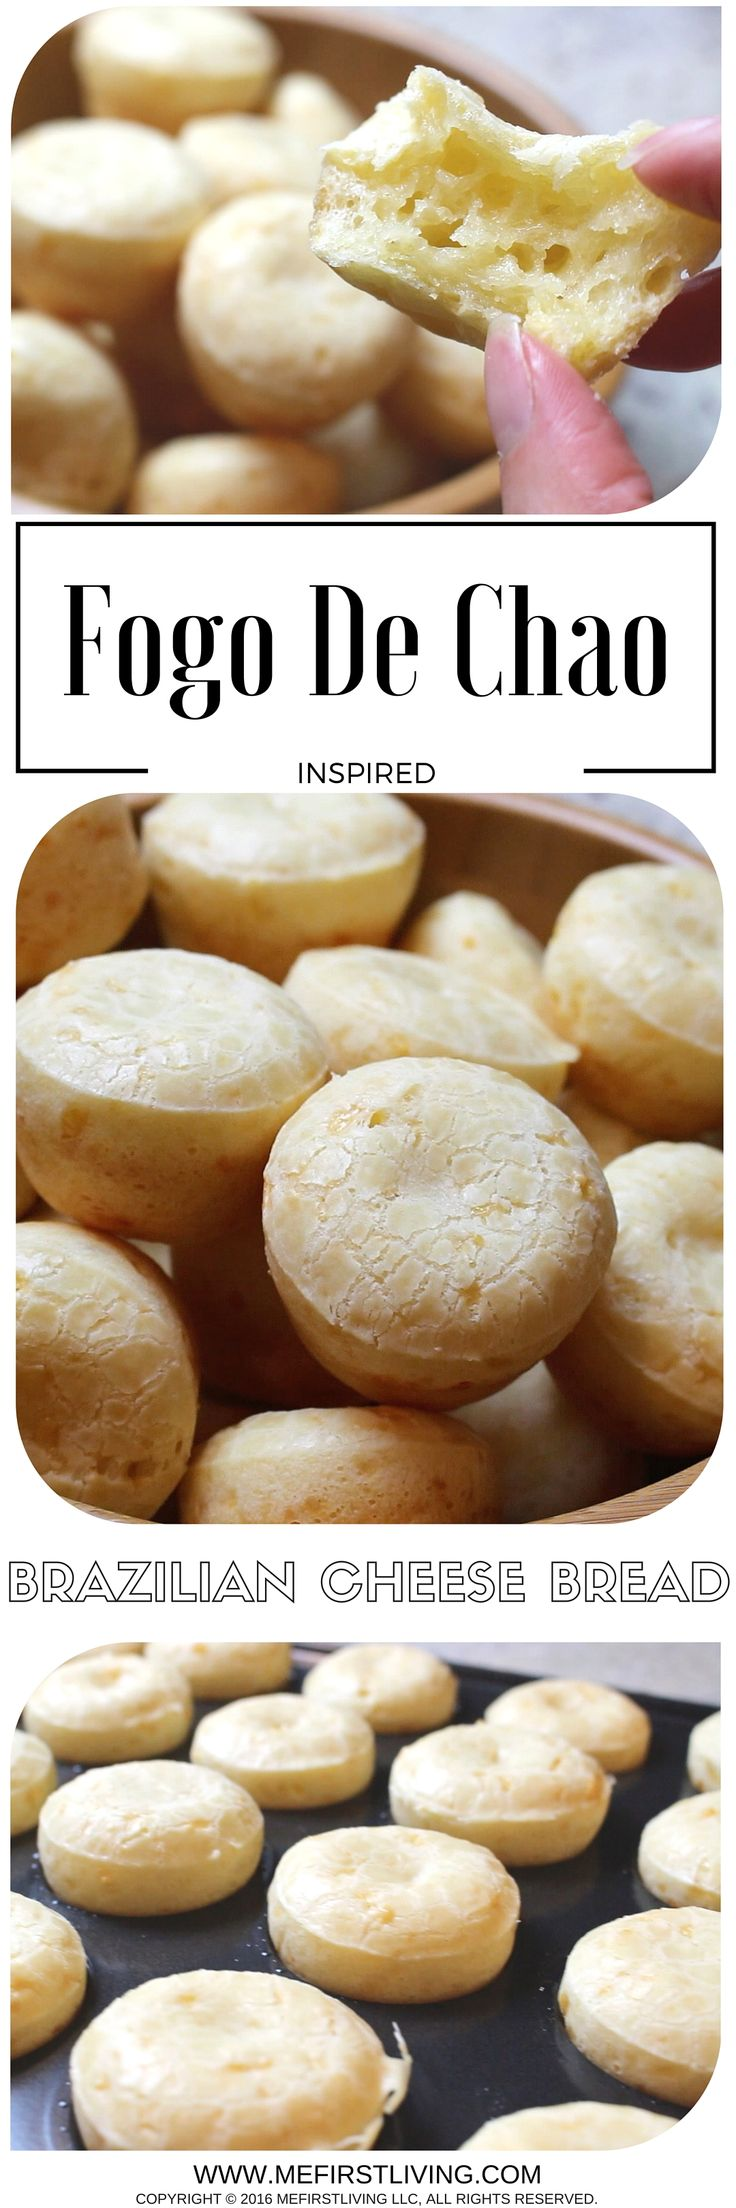 These Fogo De Chao inspired Pao De Queijo are cheesy, savory, and deliciously chewy 2-bite traditional Brazilian cheese puff bread that are unlike any bread out there! They're made with Tapioca Flour (starch) instead of traditional wheat flour so they are a great Gluten-Free option for those with Celiac's Disease! #paodequeijo #brazilianbread